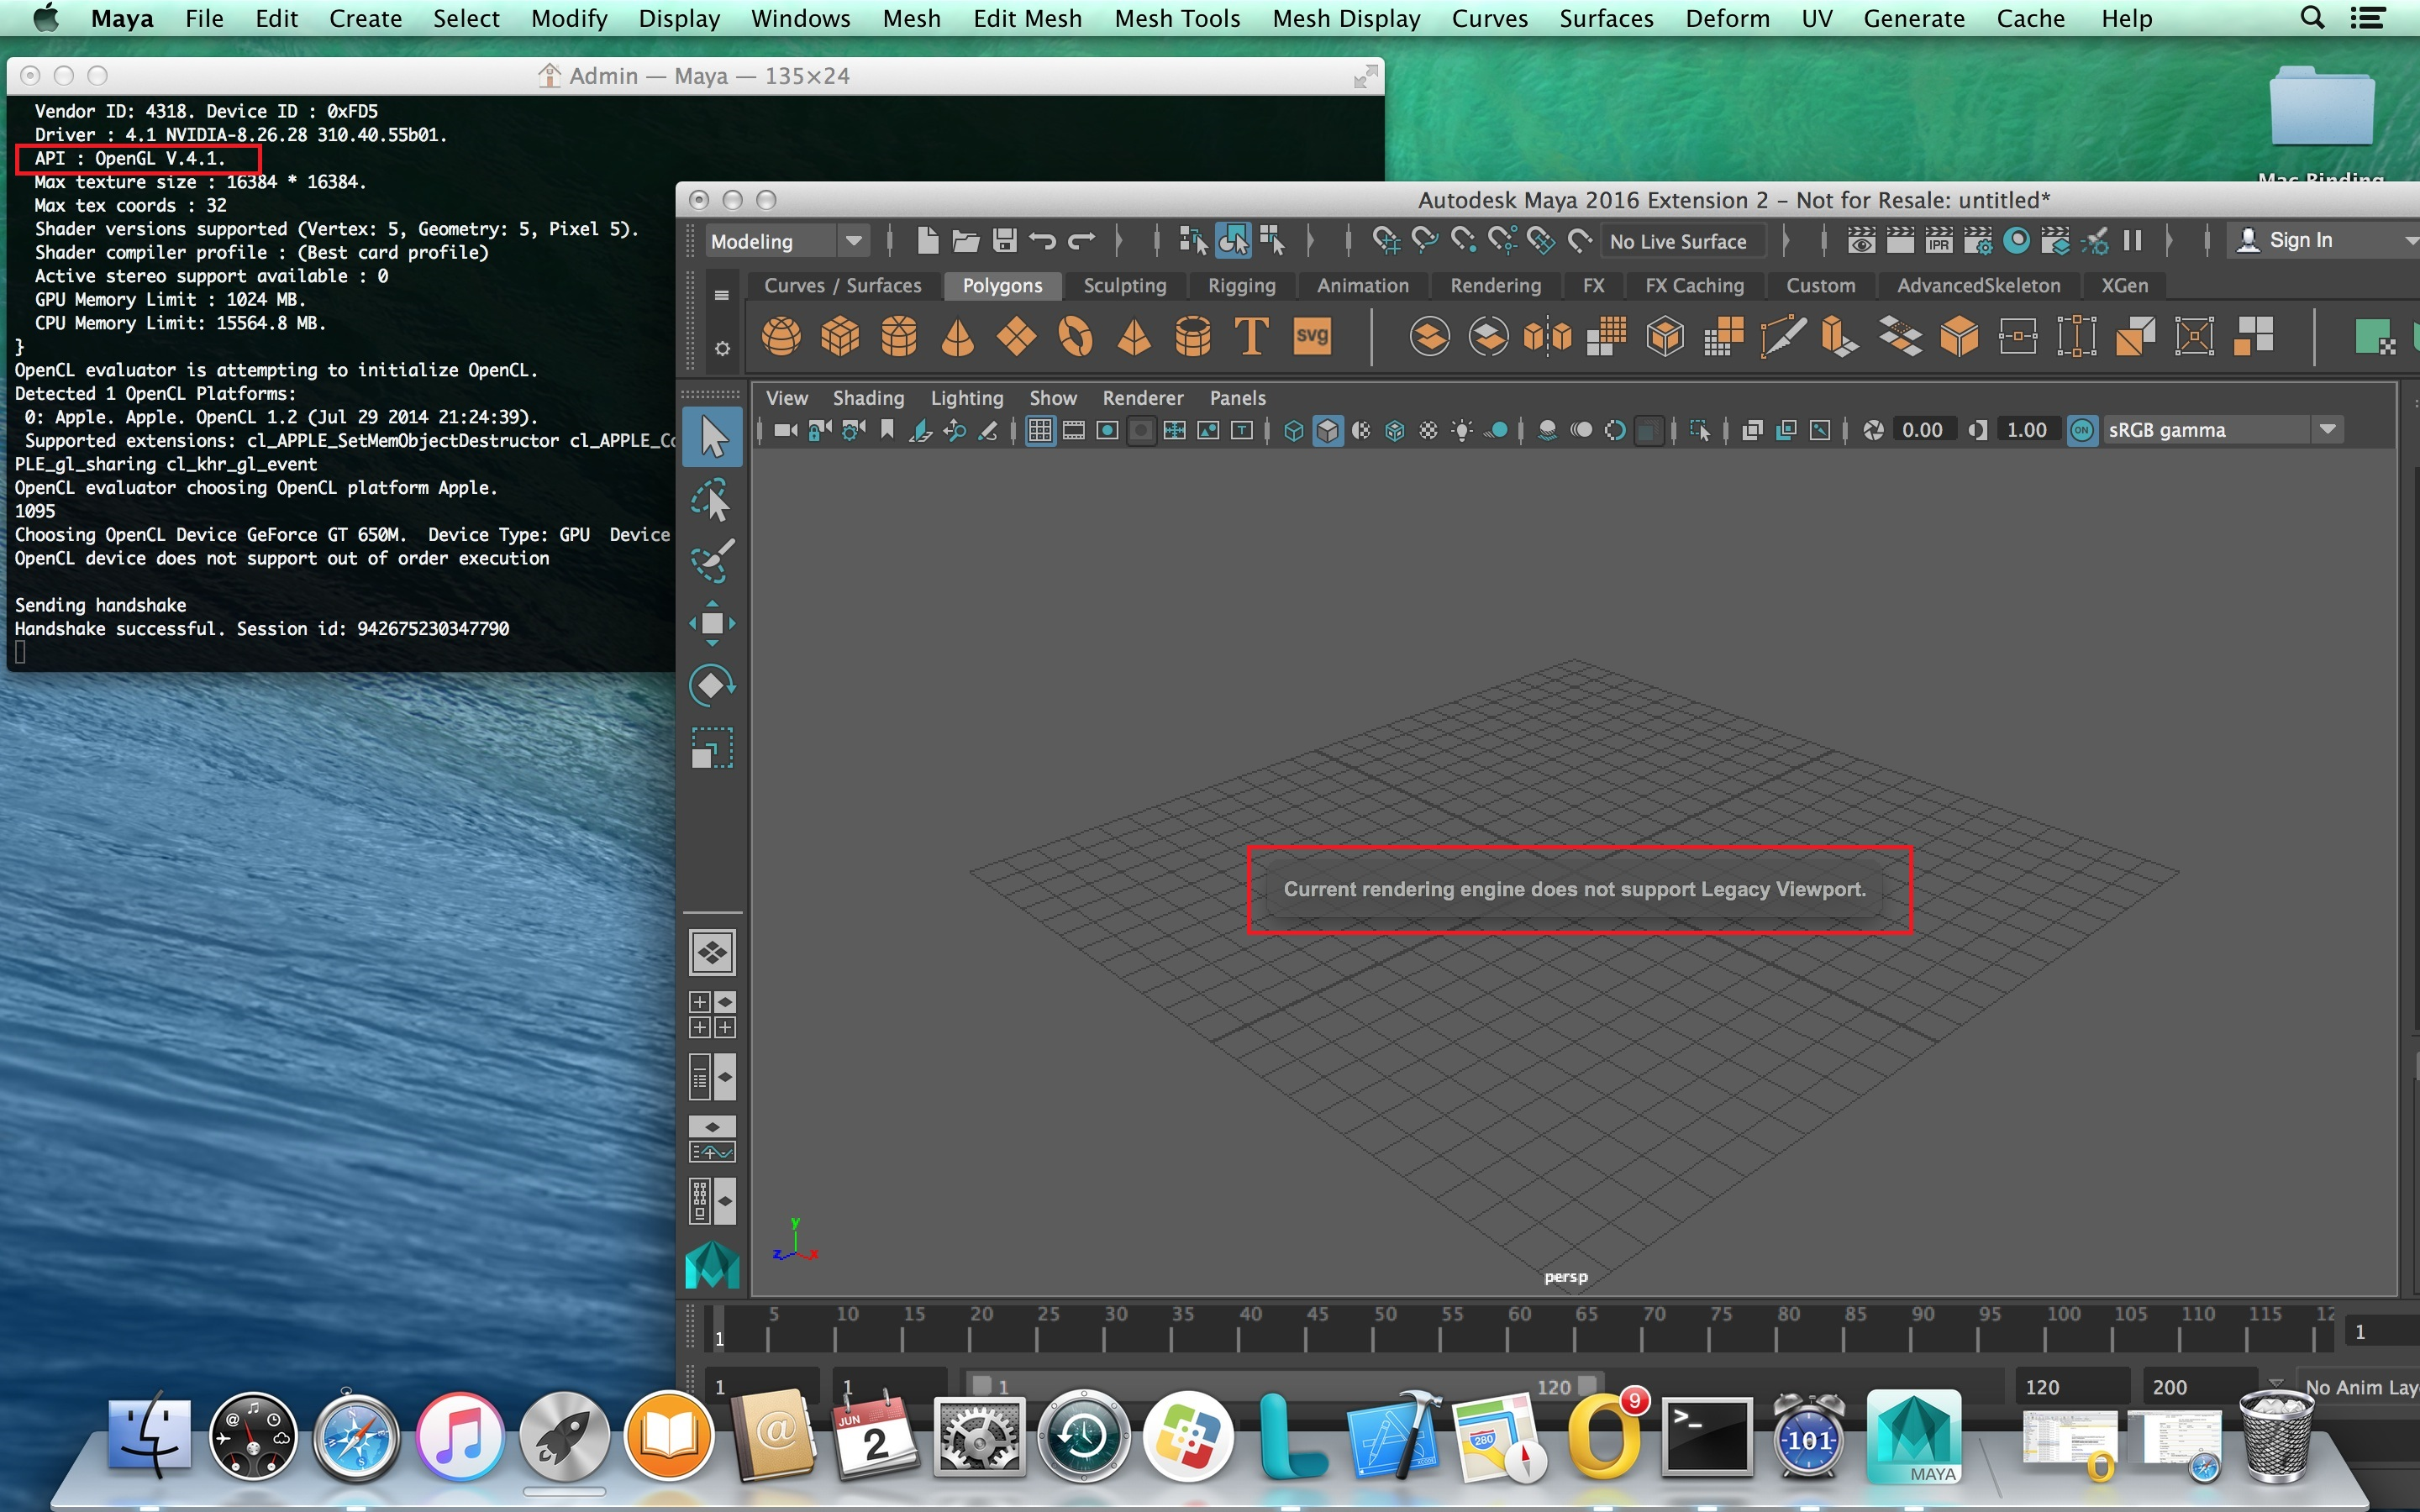 Maya 2016 5 Viewport 2 0 on OSX : How to handle the